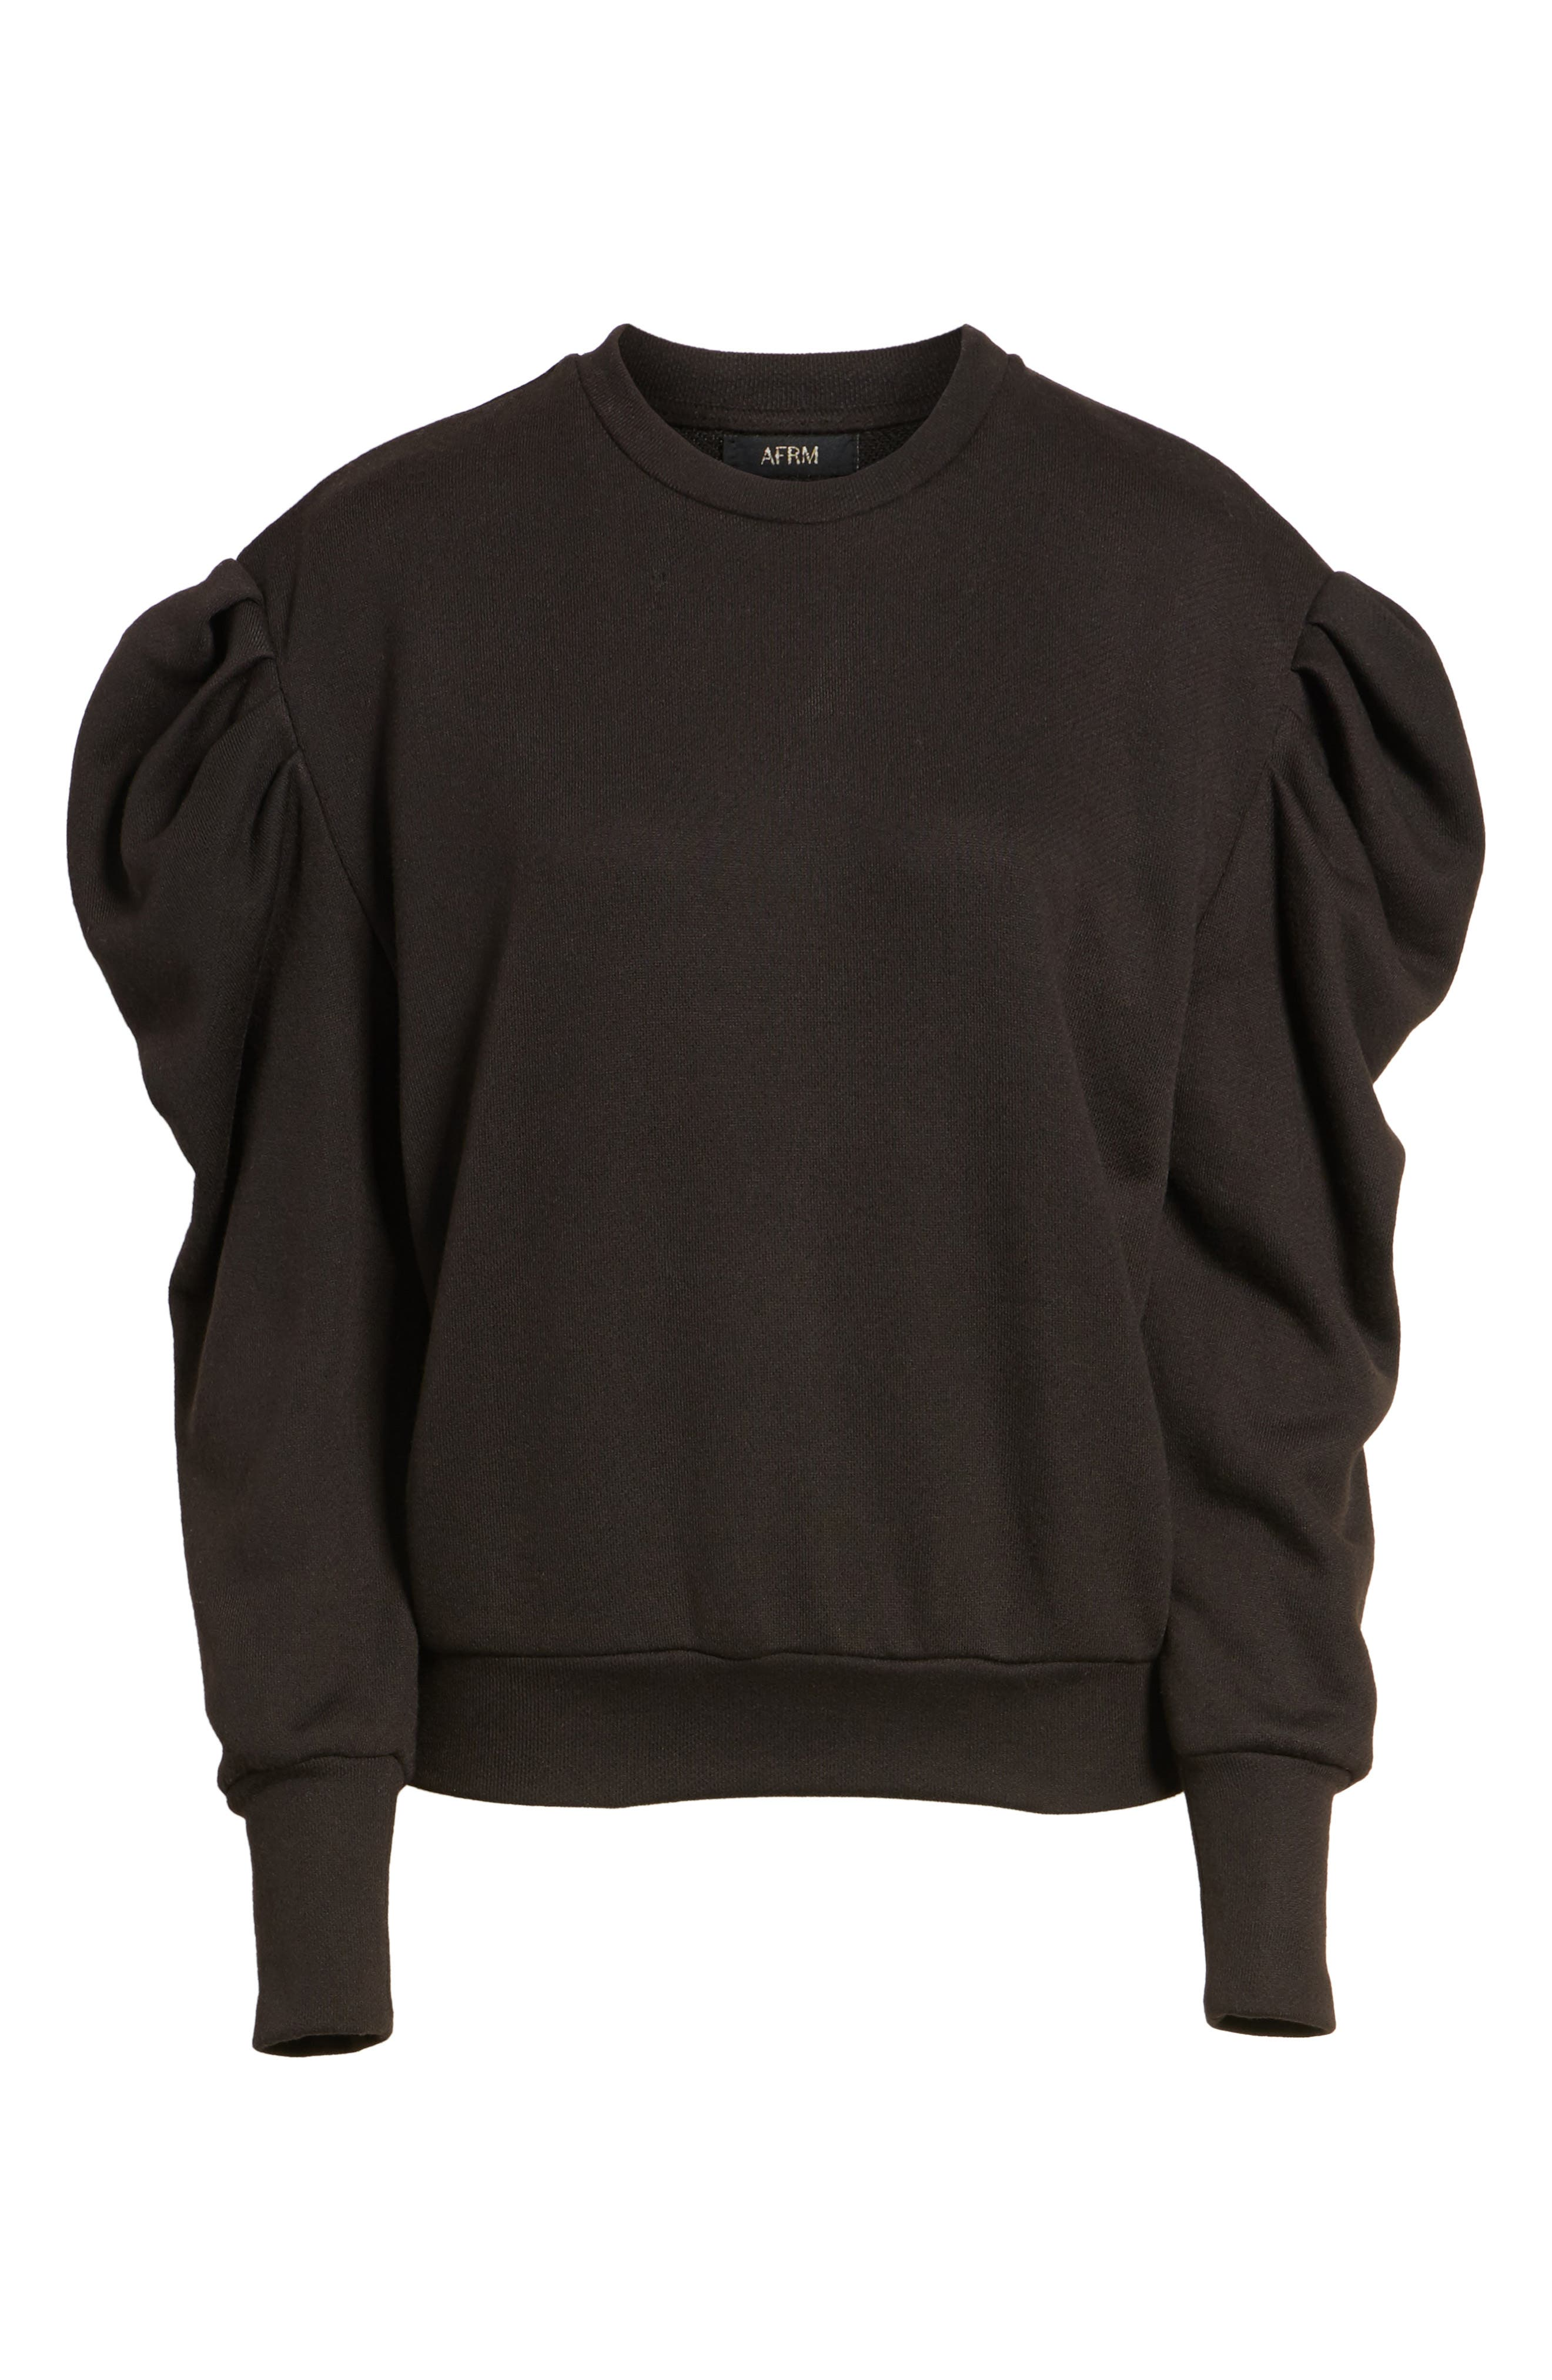 James Balloon Sleeve Sweatshirt,                             Alternate thumbnail 6, color,                             001